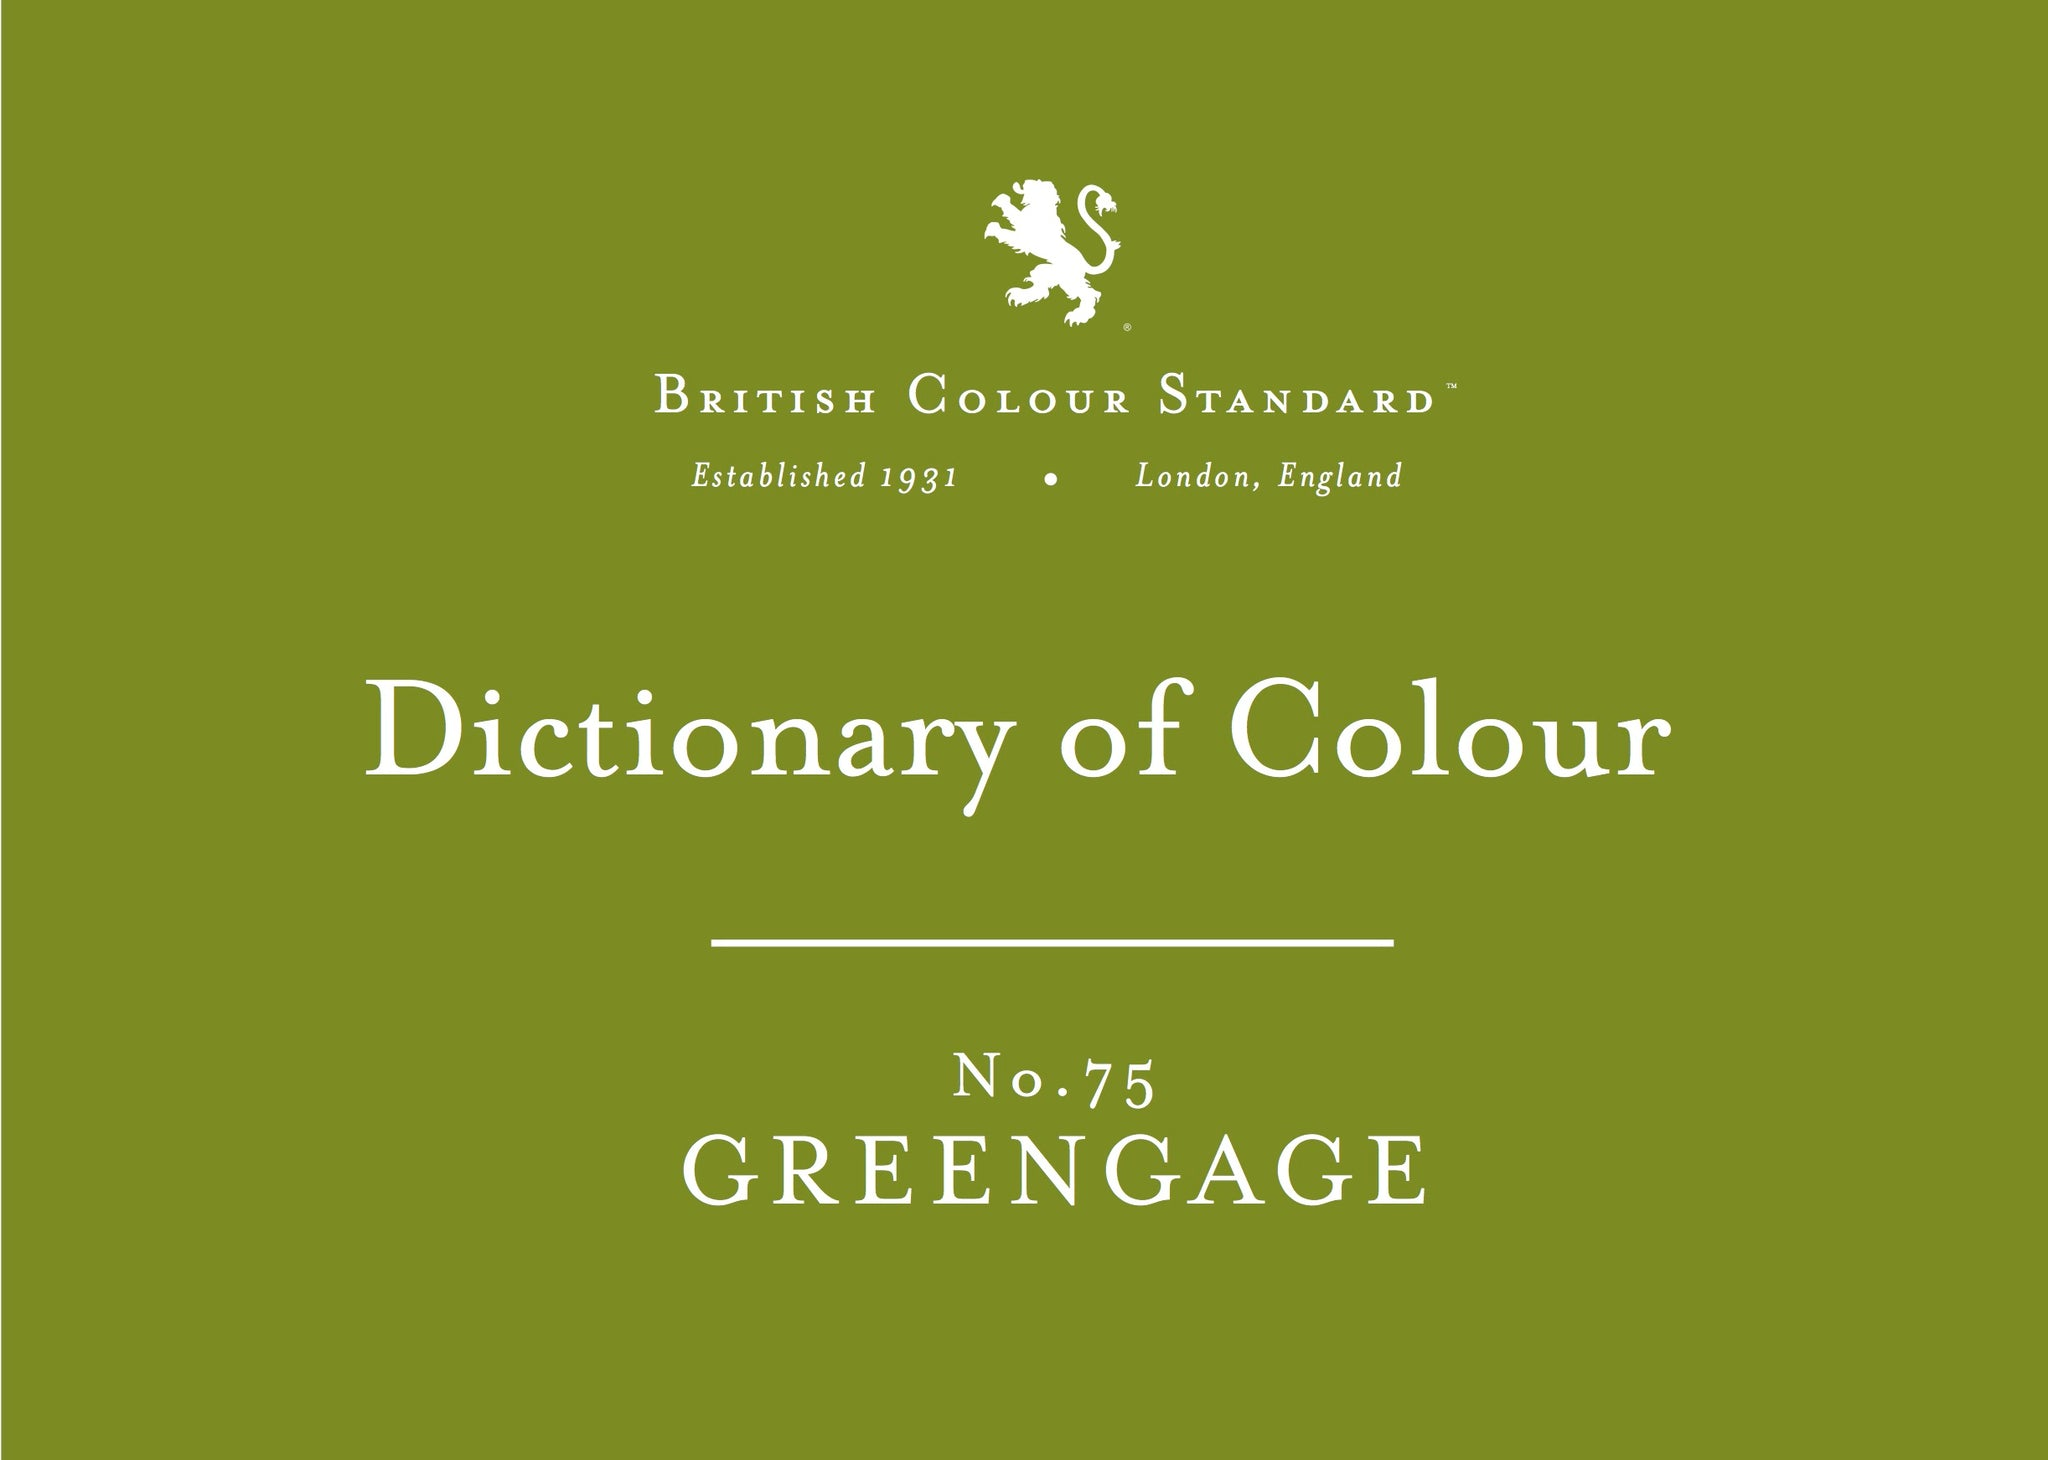 BRITISH COLOUR STANDARD - Greengage NO. 75